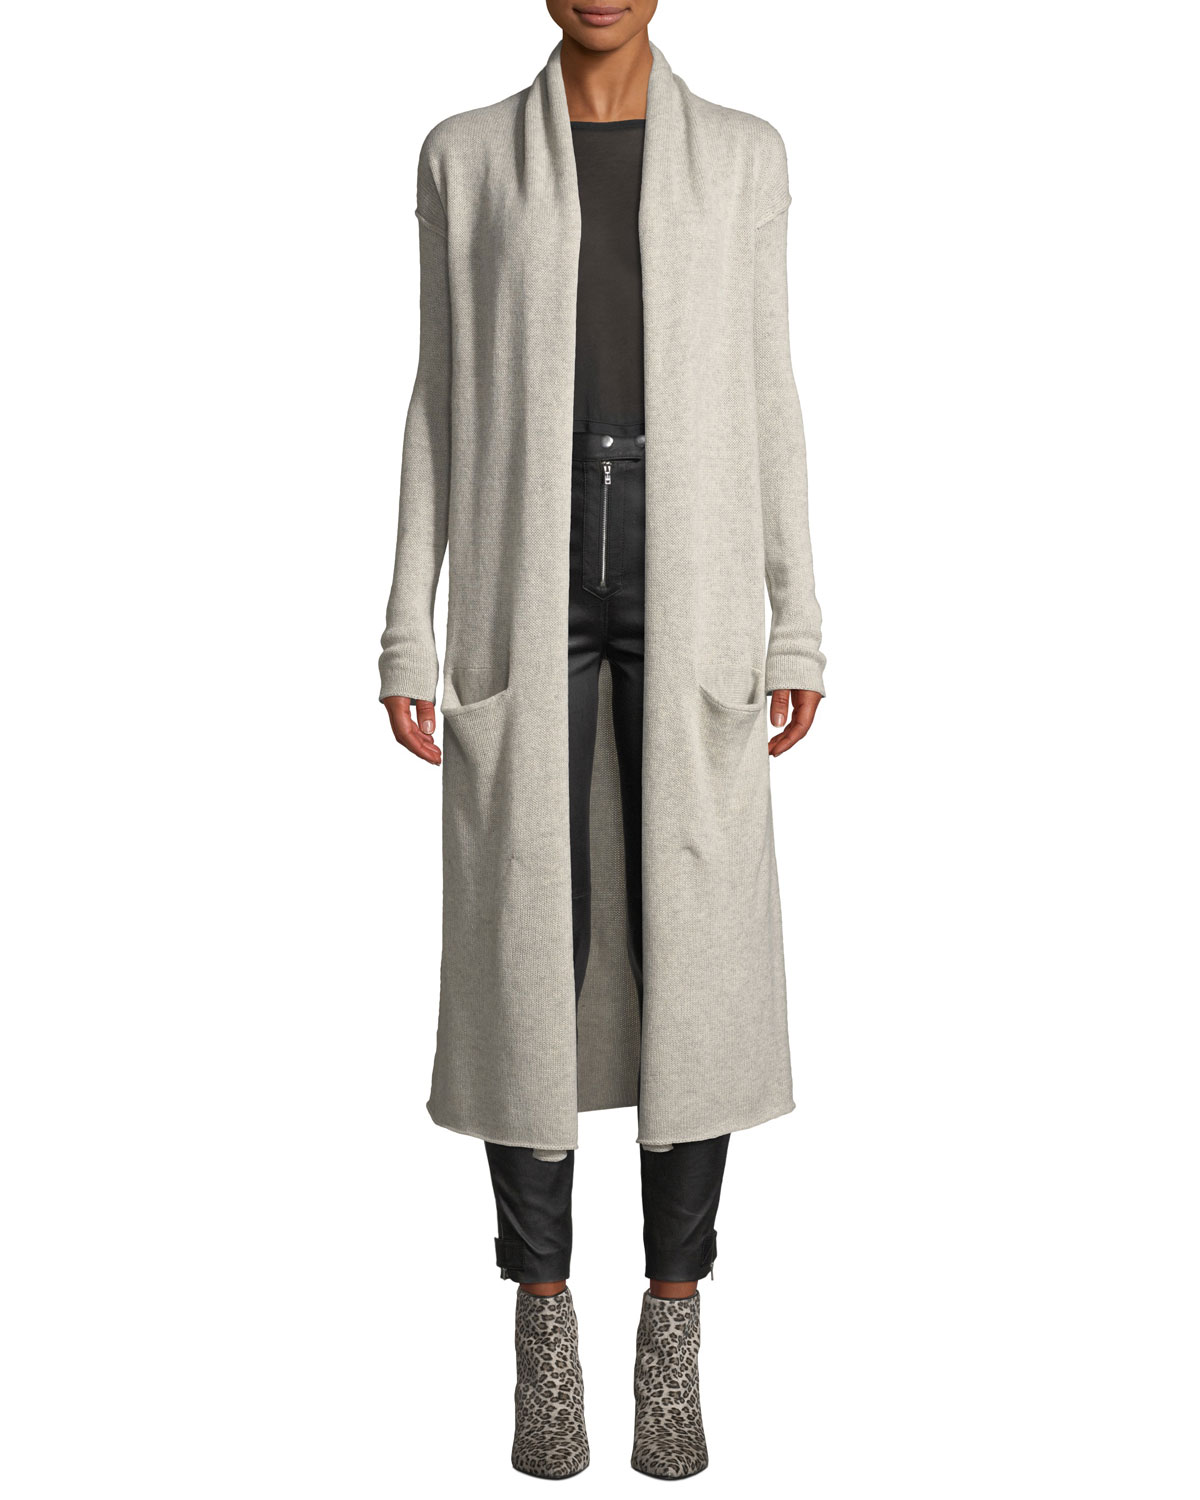 SABLYN Robertson Open-Front Cashmere Long Cardigan in Gray